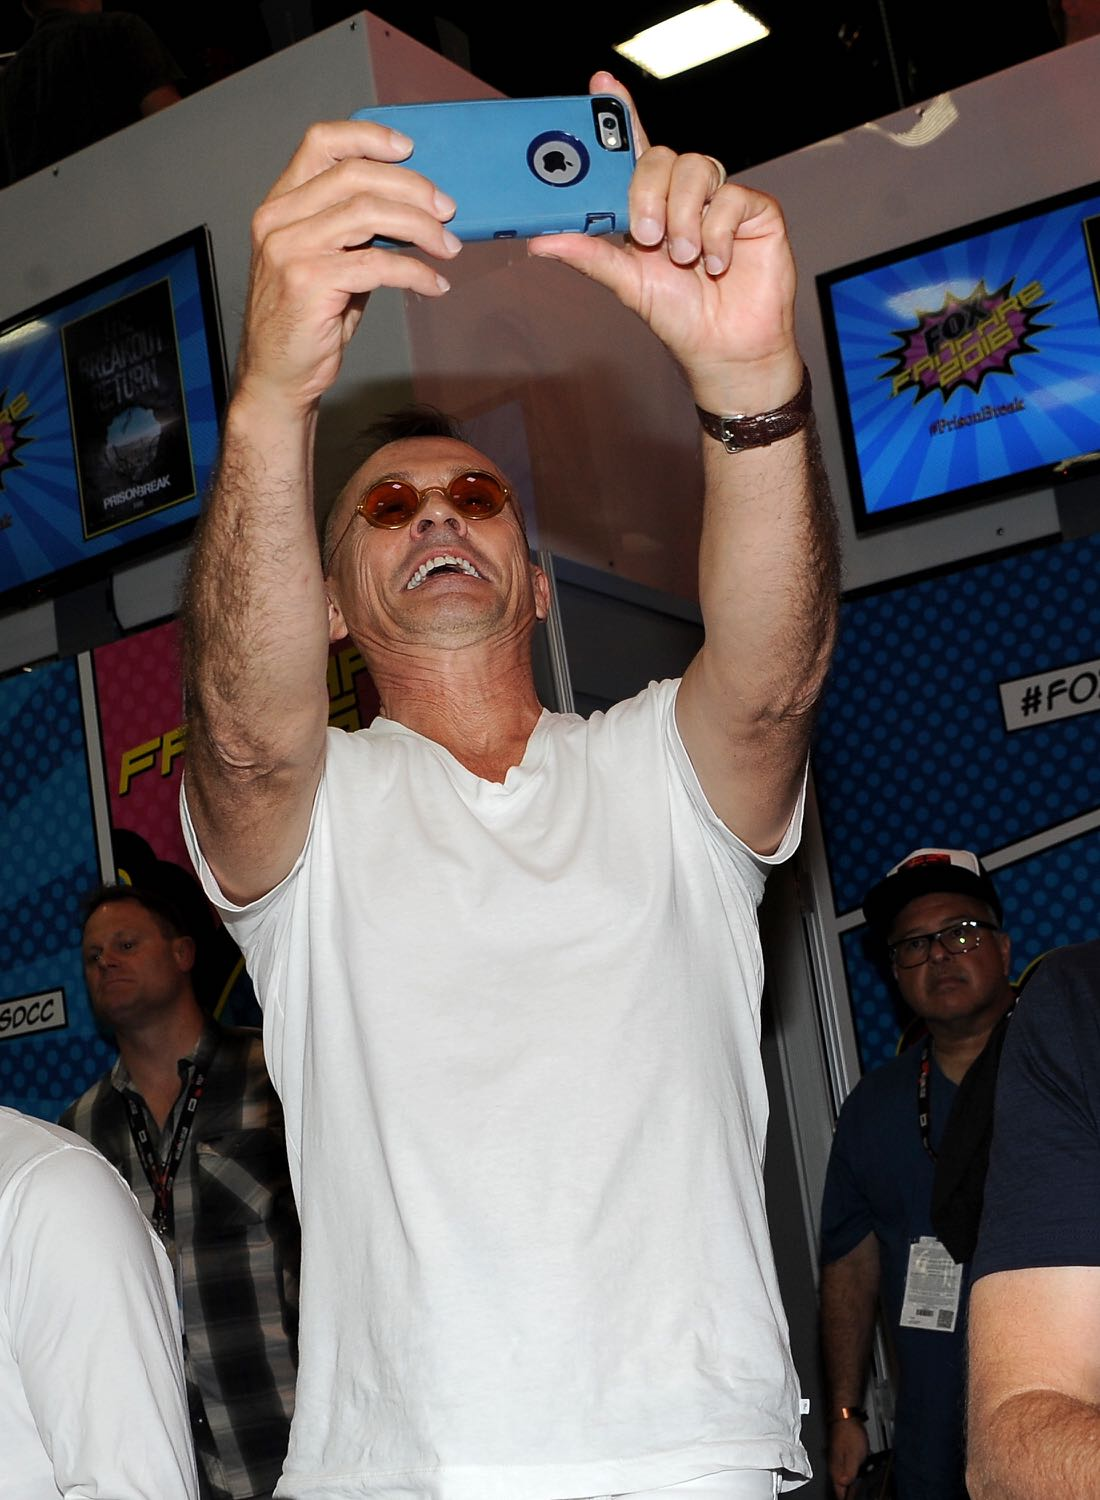 FOX FANFARE AT SAN DIEGO COMIC-CON © 2016: PRISON BREAK cast member Robert Knepper during the PRISON BREAK booth signing on Sunday, July 24 at the FOX FANFARE AT SAN DIEGO COMIC-CON © 2016. CR: Scott Kirkland/FOX © 2016 FOX BROADCASTING